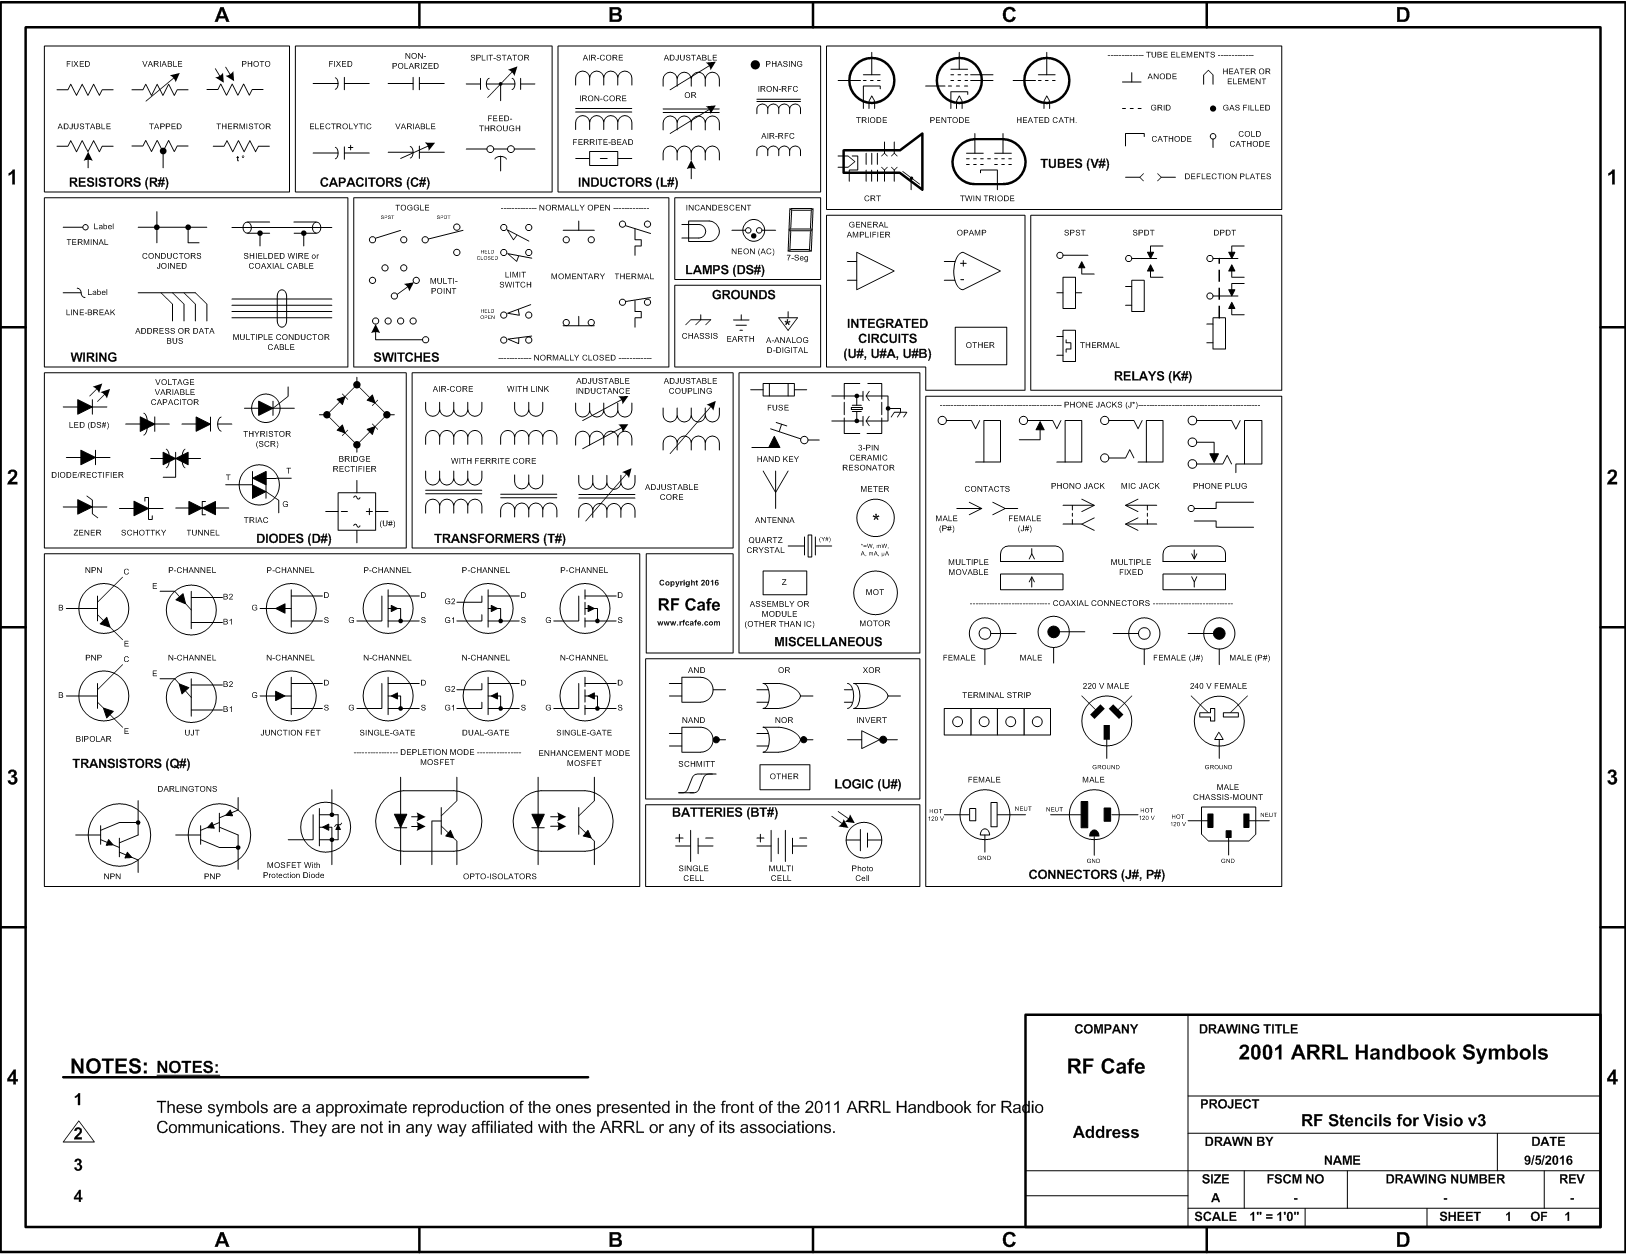 Visio Stencils on electric house wiring diagram